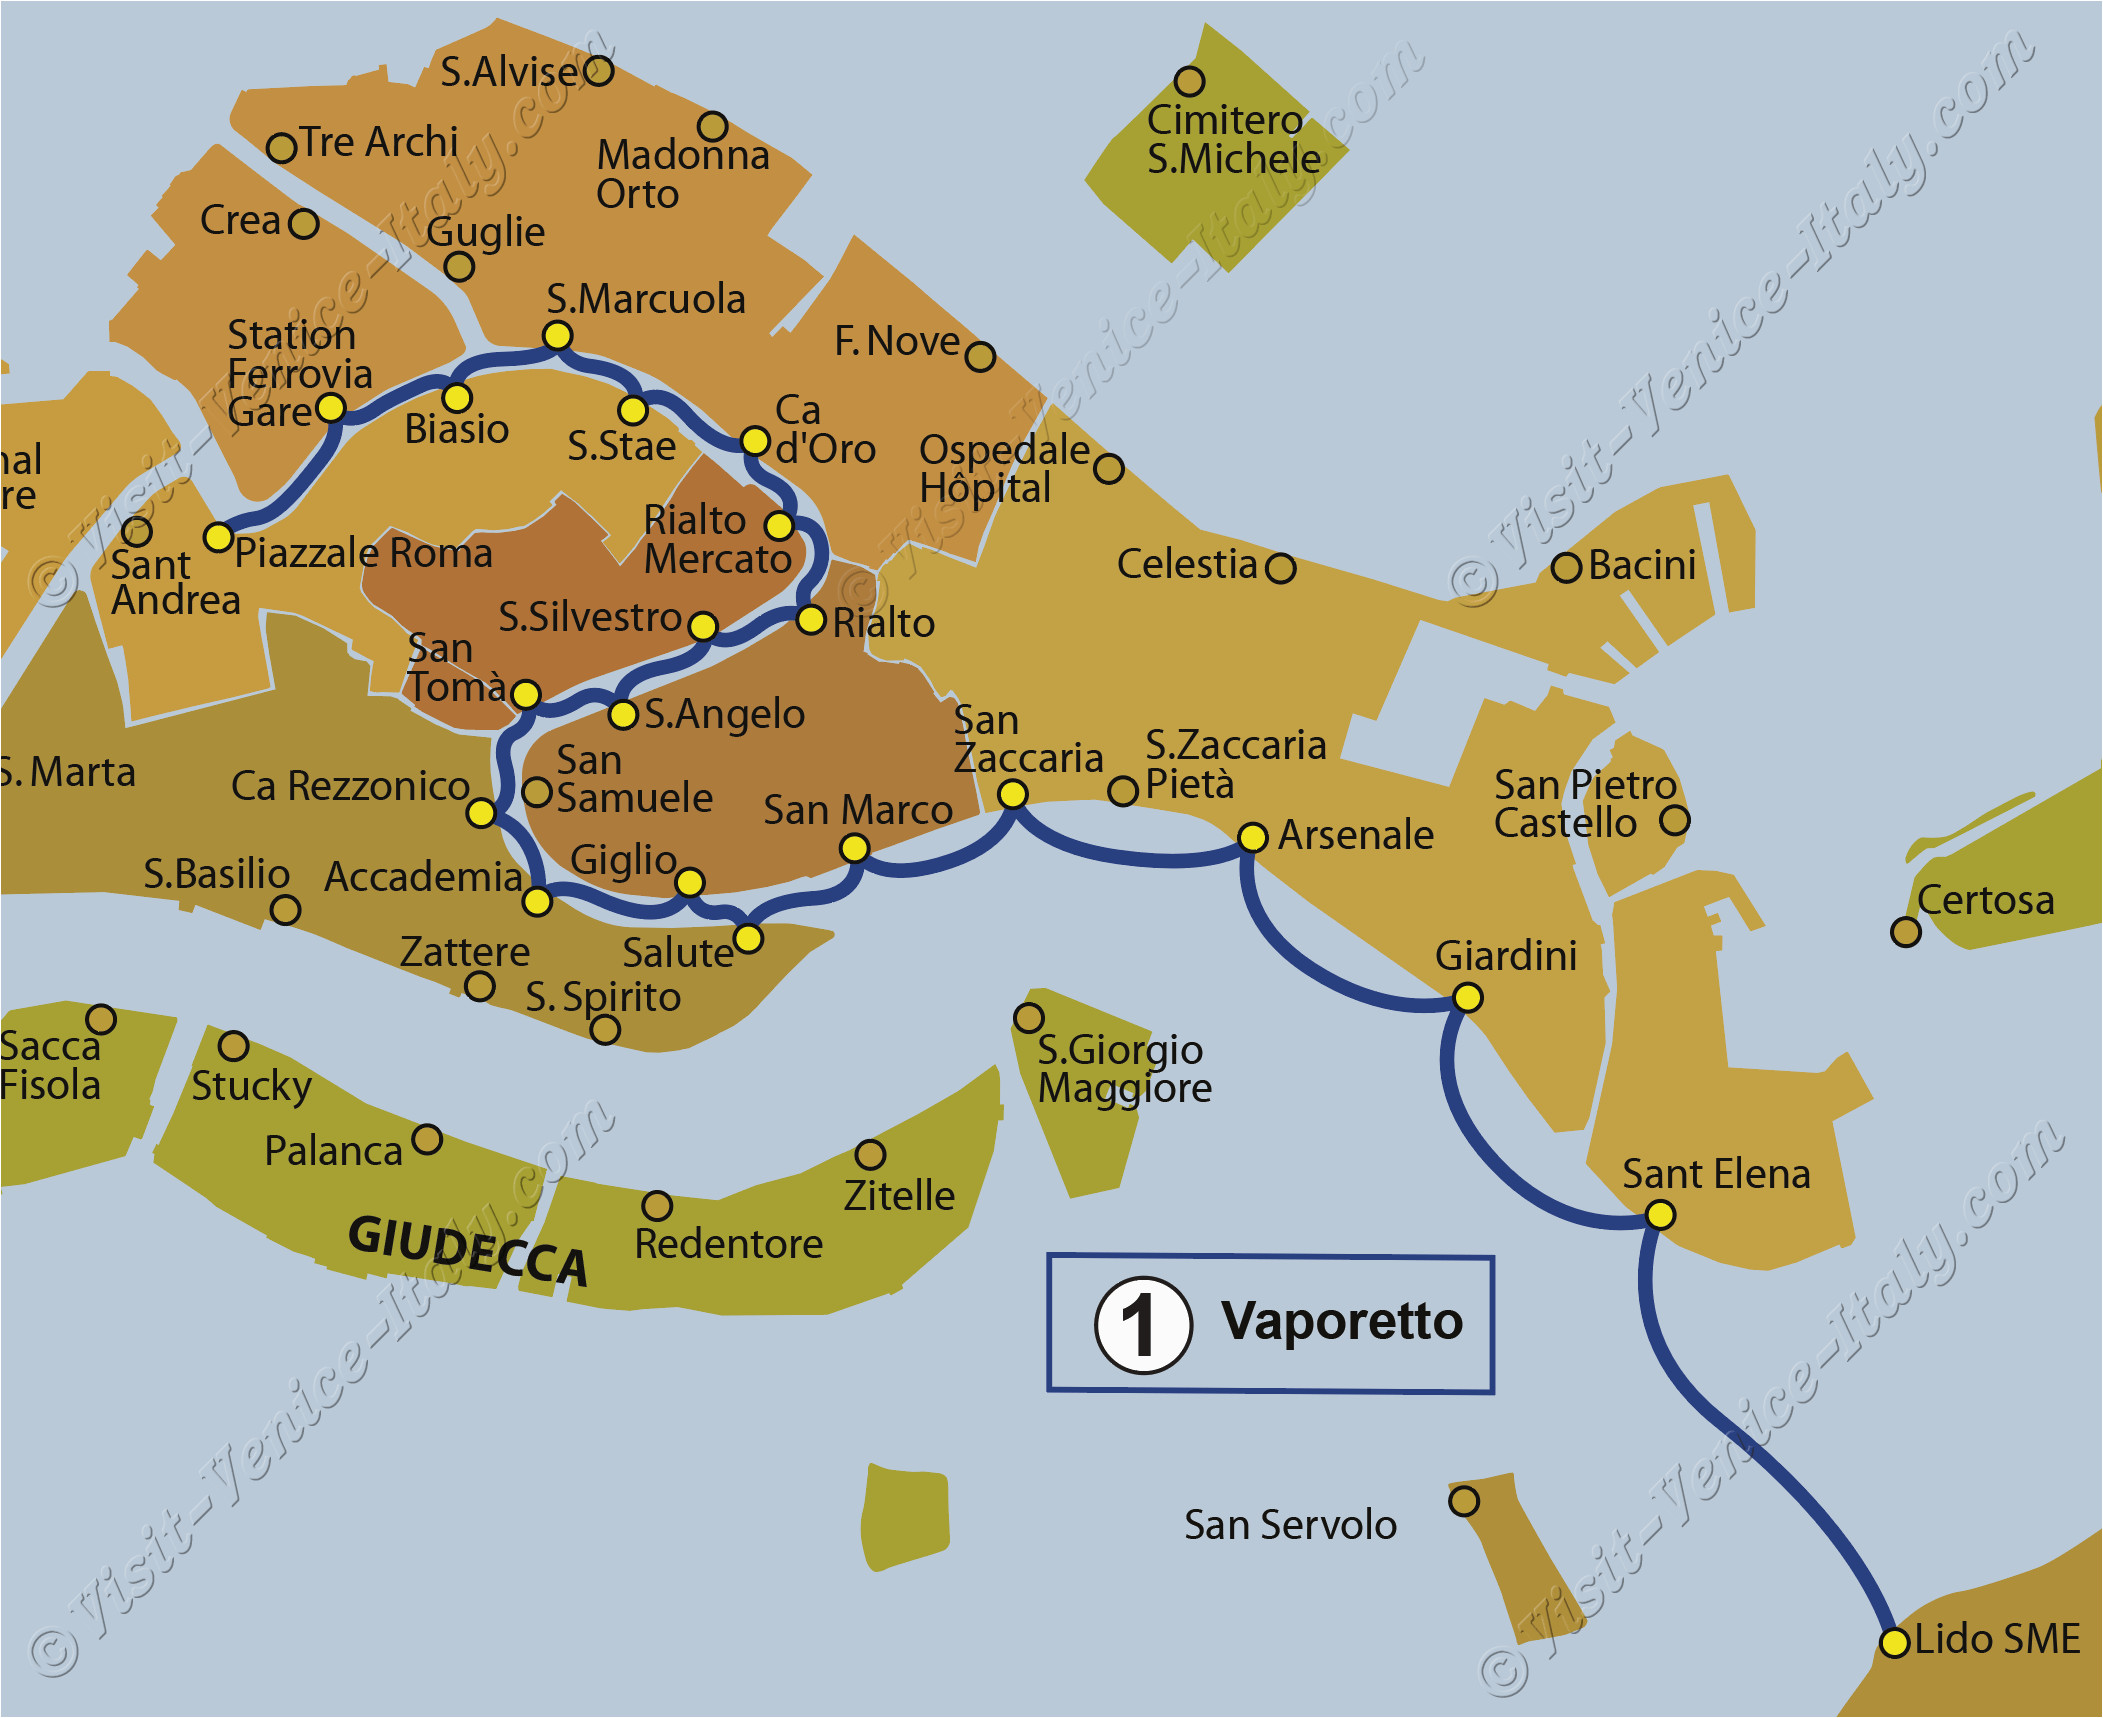 transport vaporetto waterbus bus lines maps venice italy